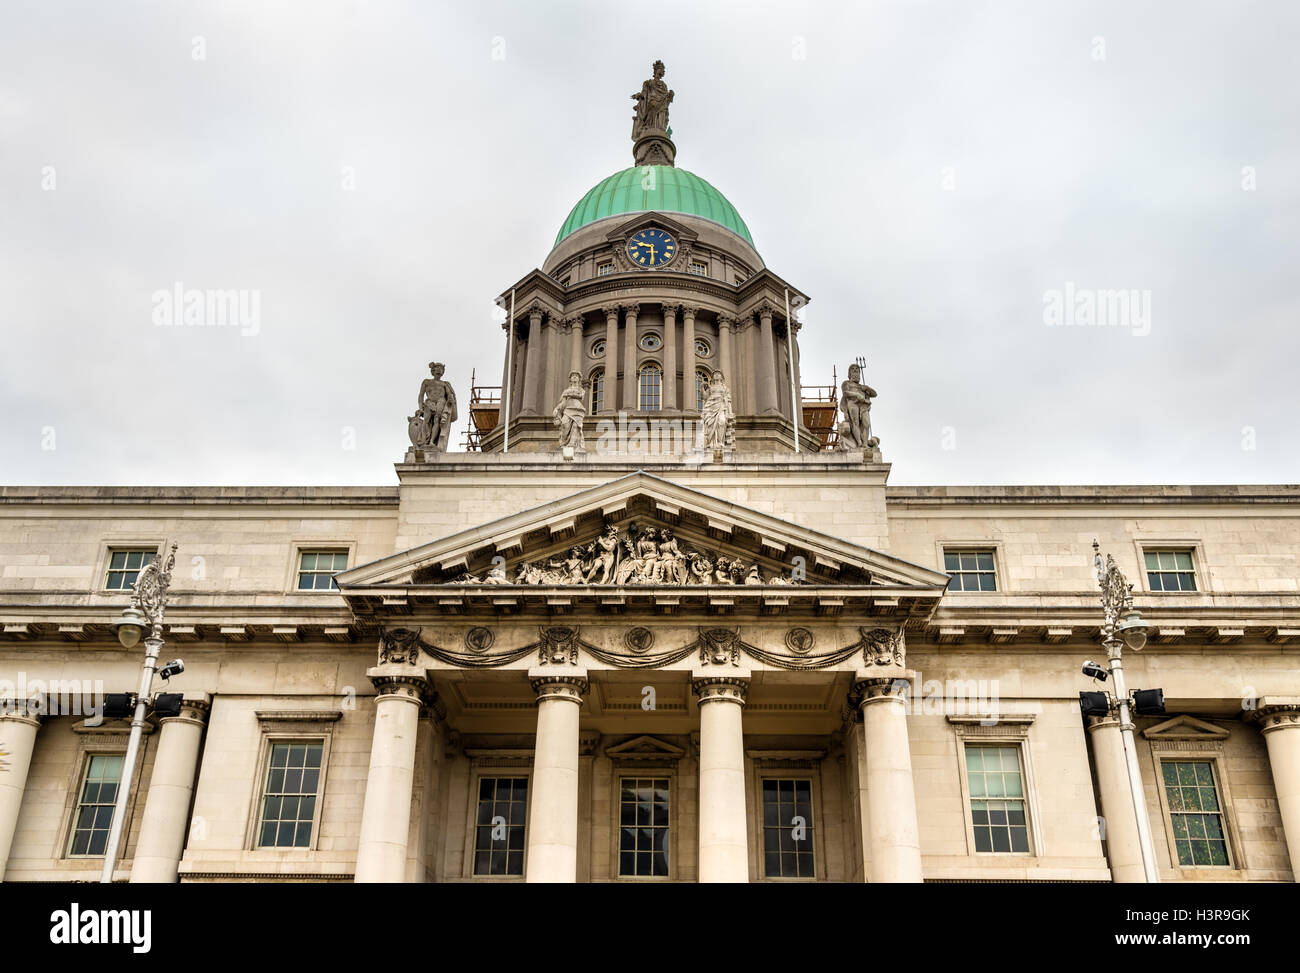 Detail of the Custom House, a neoclassical building in Dublin - Stock Image